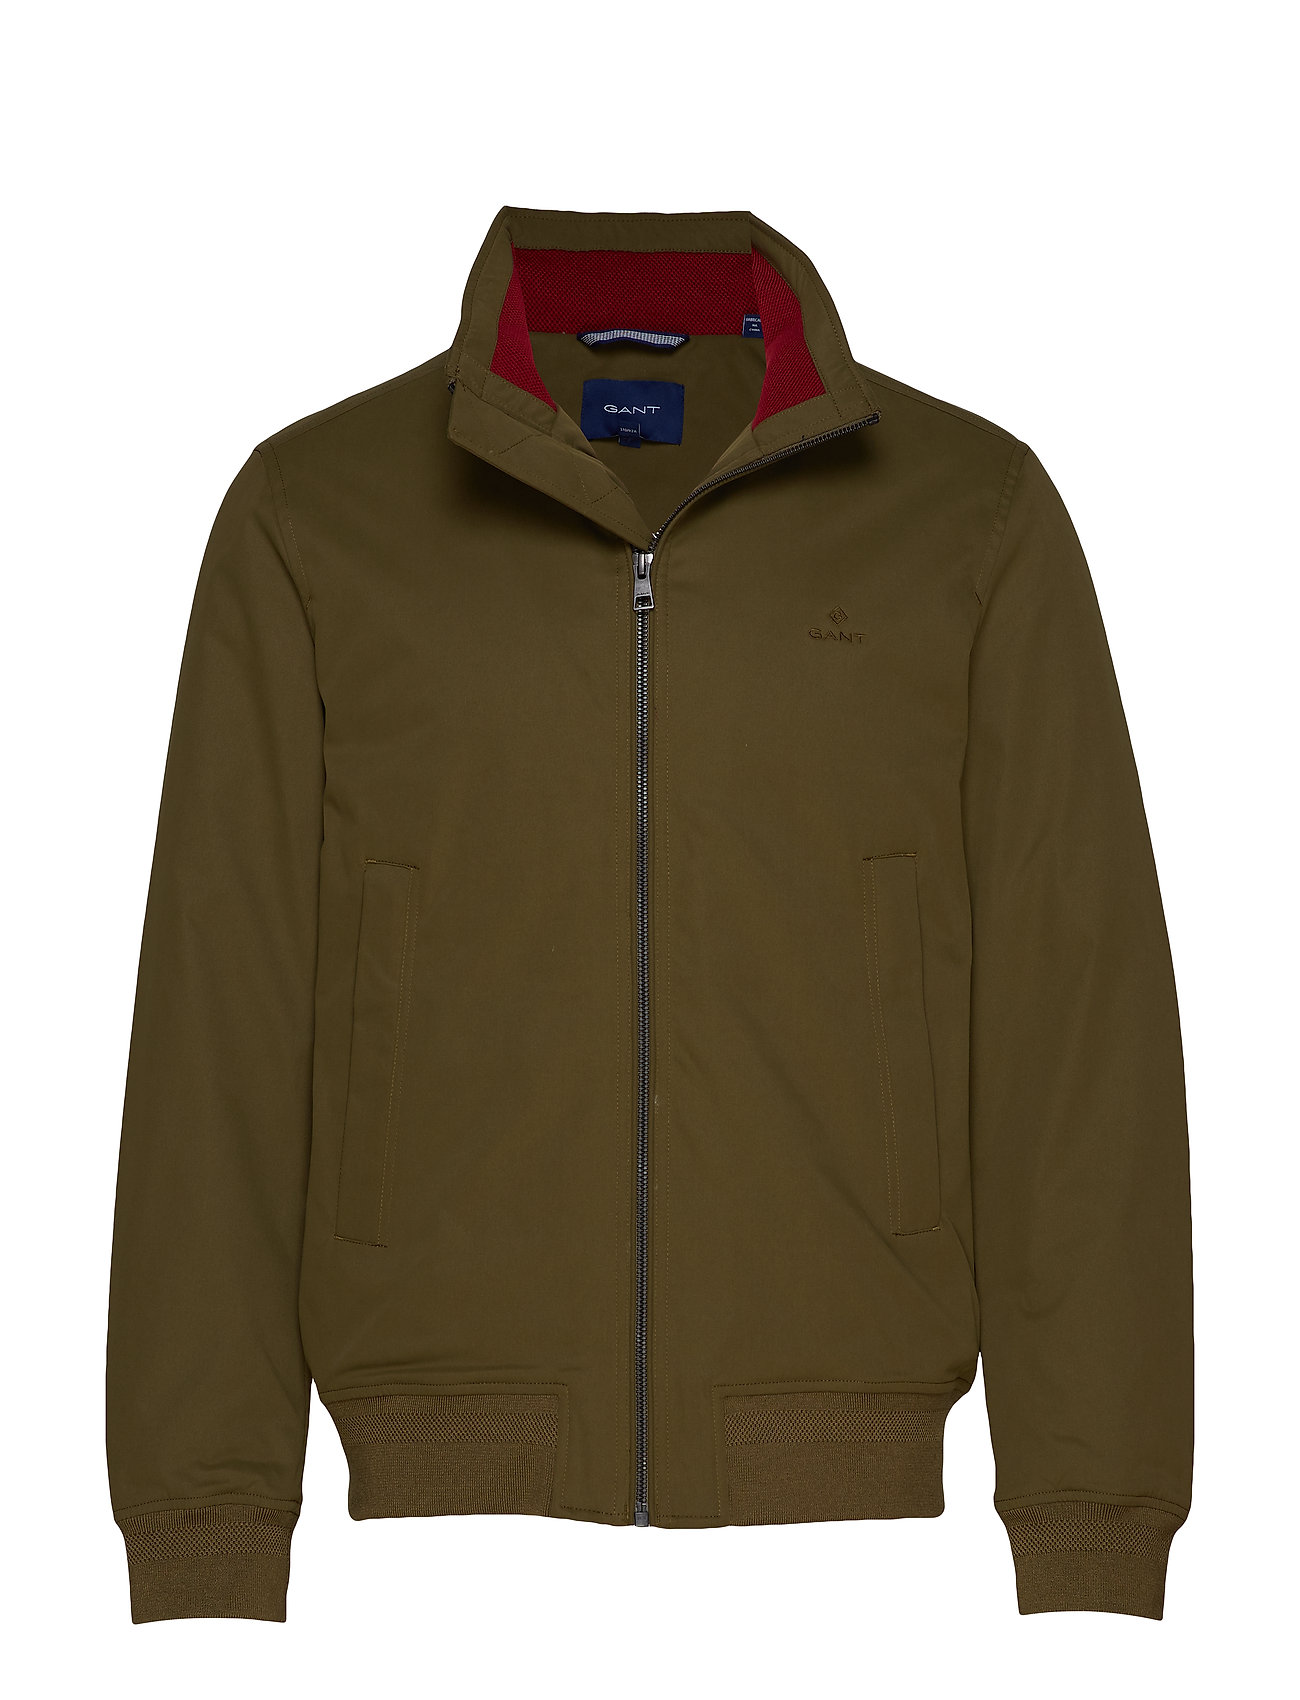 Gant D1. THE HAMPSHIRE JACKET - DARK CACTUS